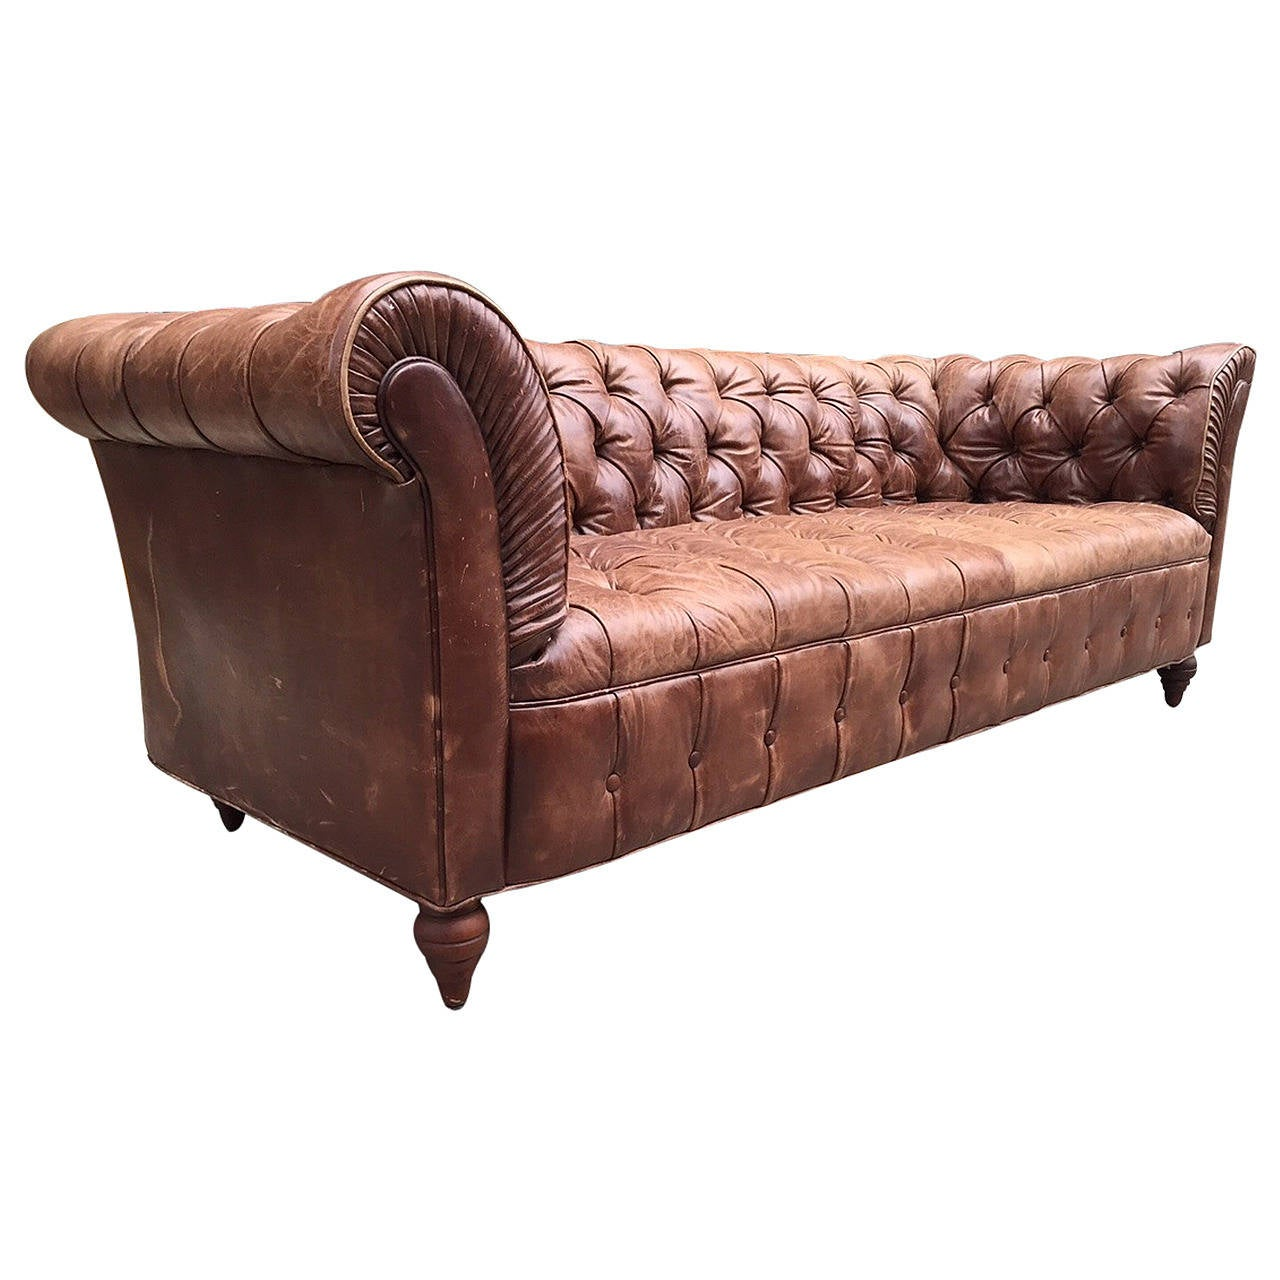 vintage leather chesterfield sofa for sale at 1stdibs. Black Bedroom Furniture Sets. Home Design Ideas